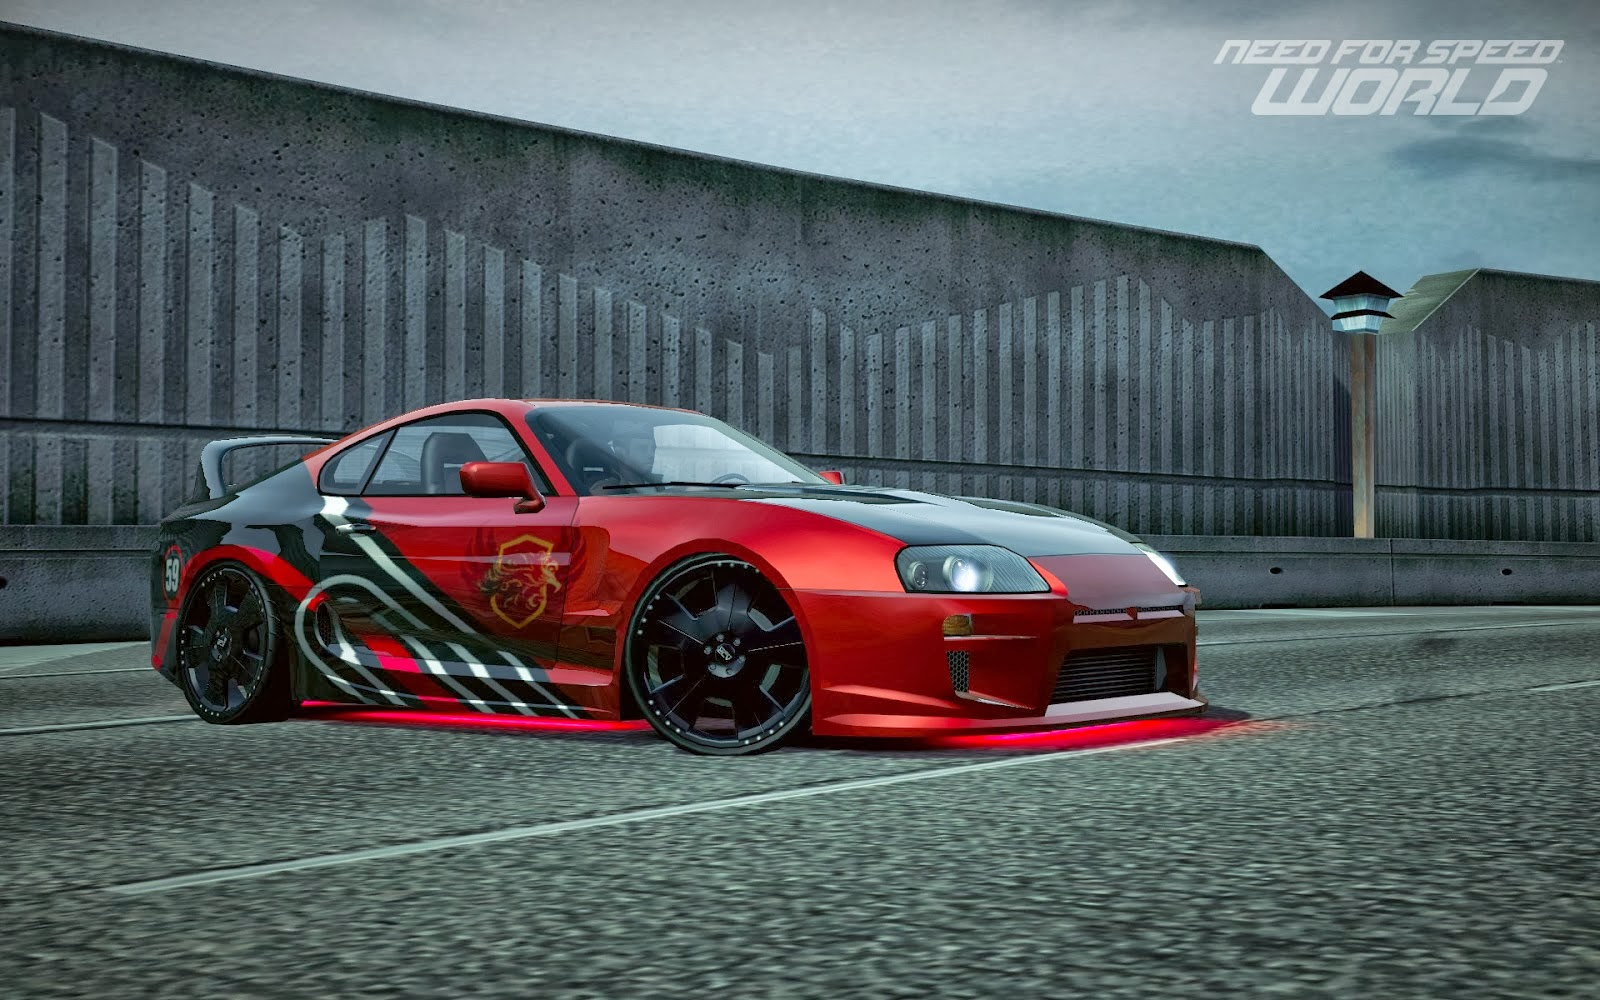 Wallpaper Toyota Supra Sports Car Need For Speed: Need For Speed World HD Images